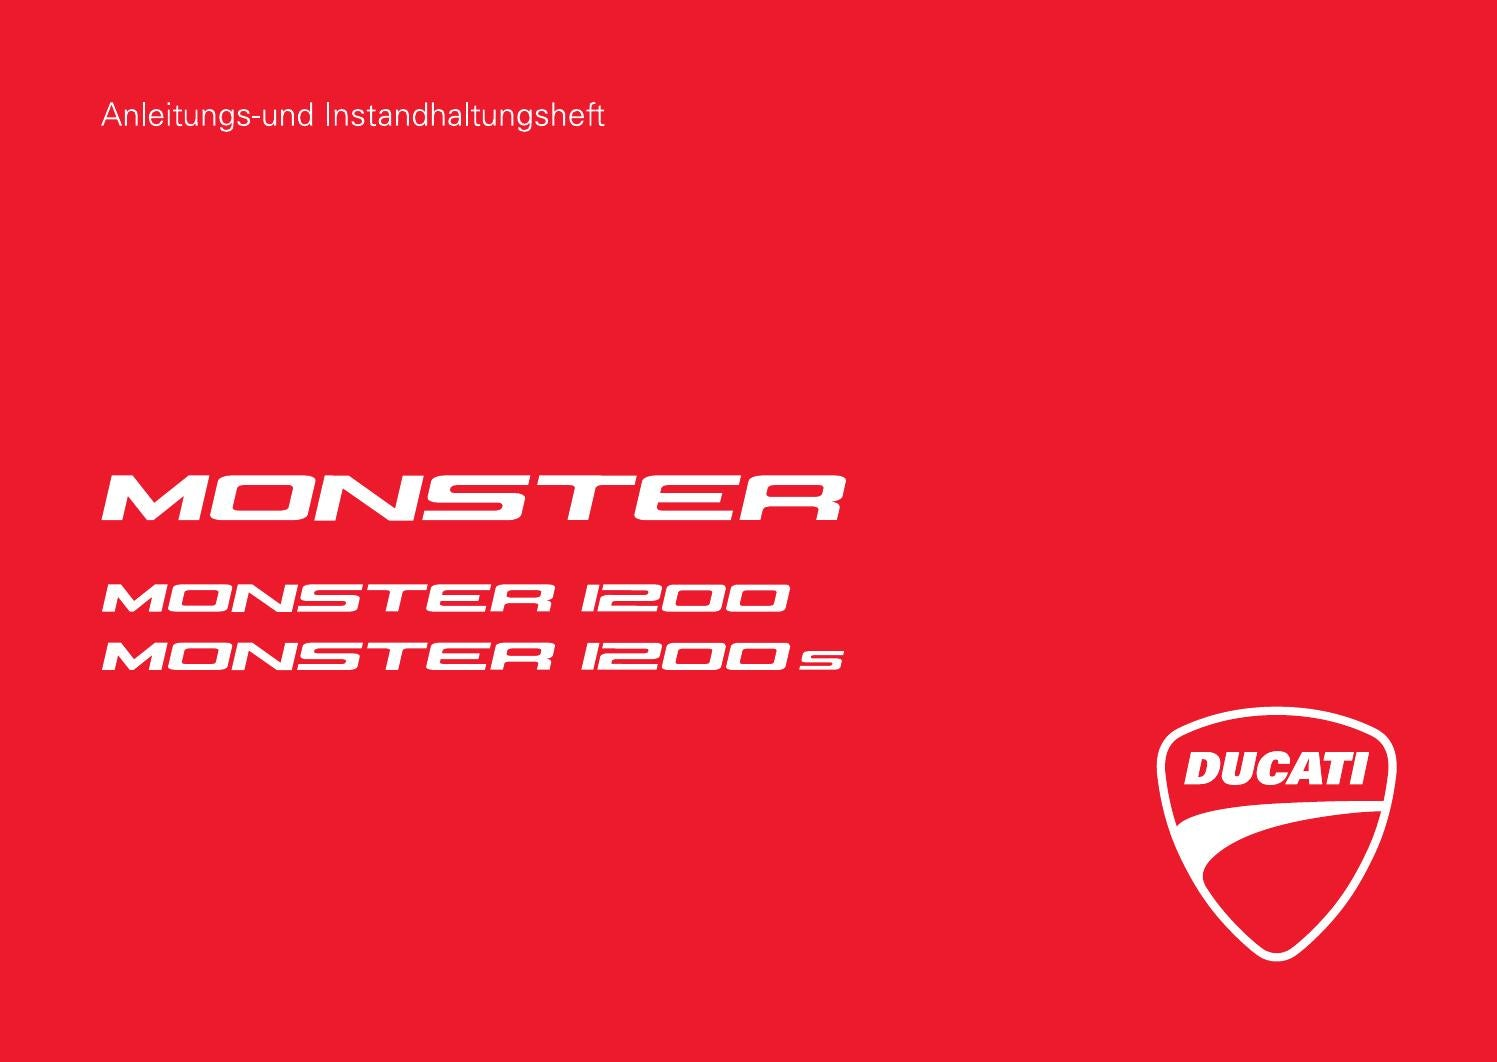 Anleitung STREETFIGHTER 848 by DUCATI AUSTRIA - issuu